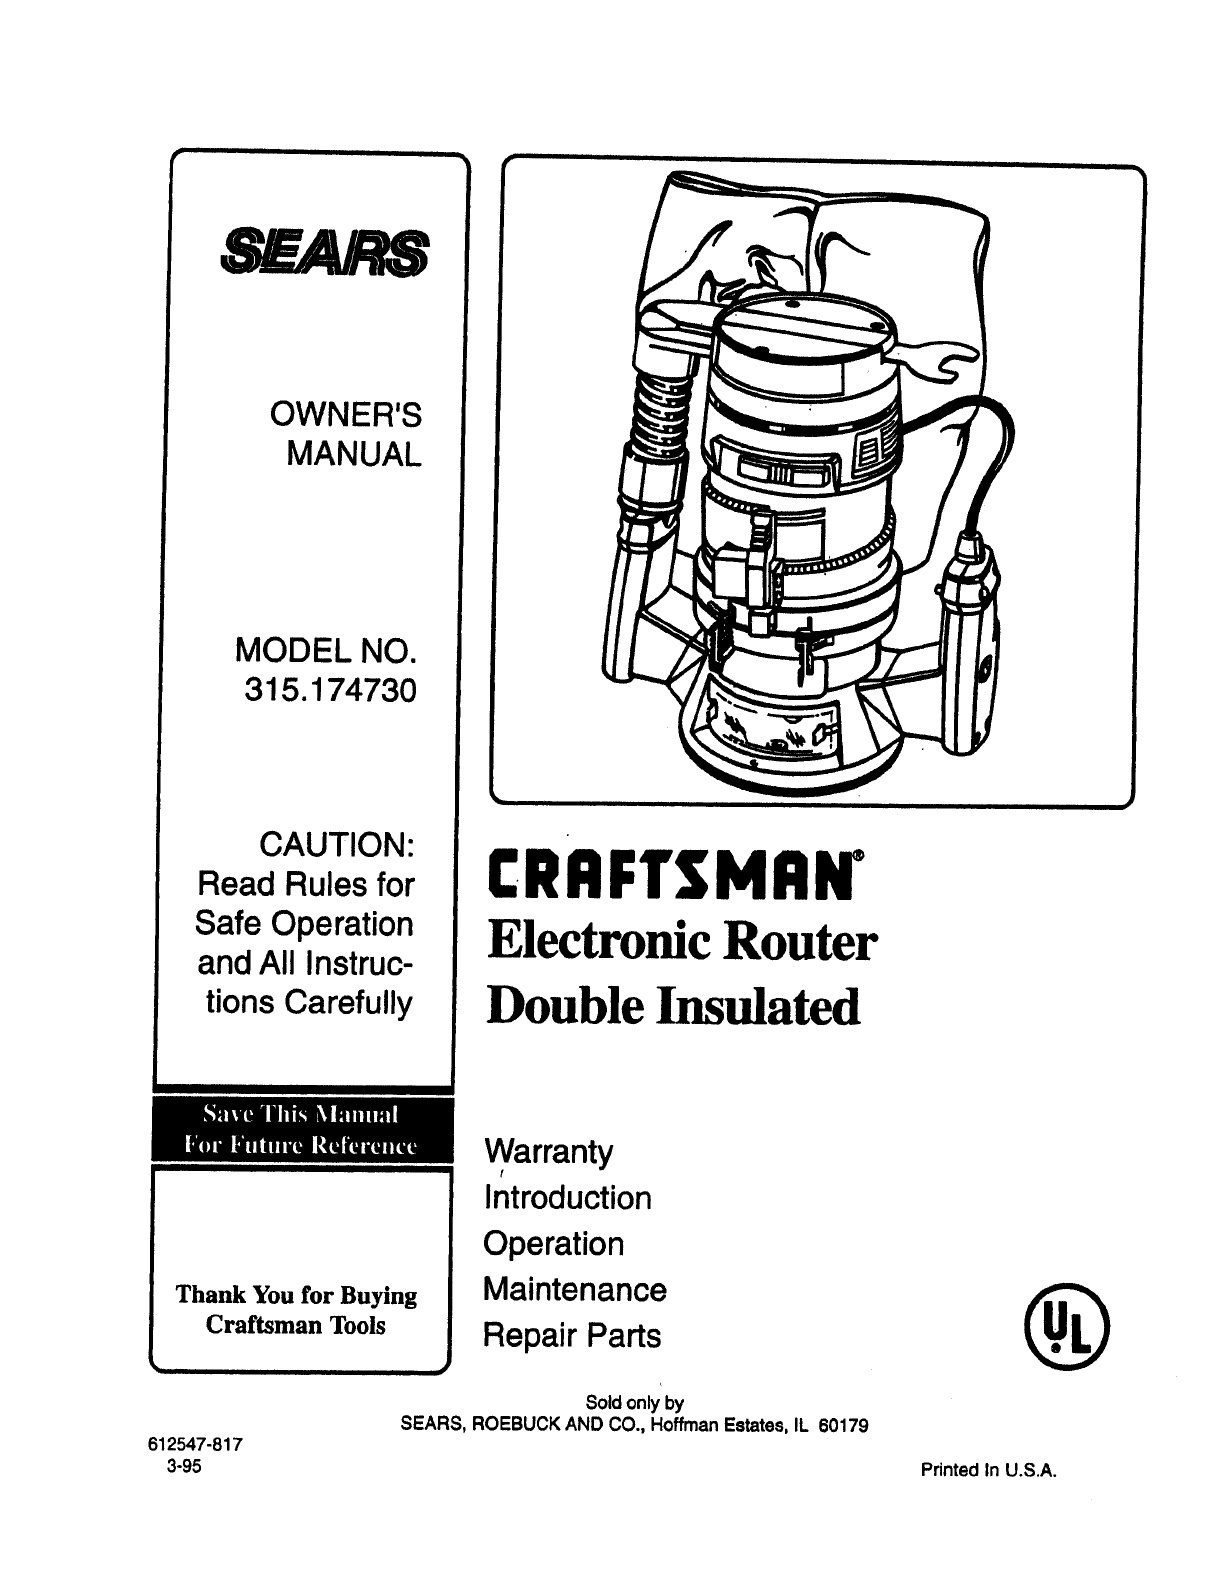 7d677a8b 287b 4a27 a1ac a6038dc8e4d1 bg1 sears router 315 17473 user guide manualsonline com Craftsman Plunge Router Models at reclaimingppi.co